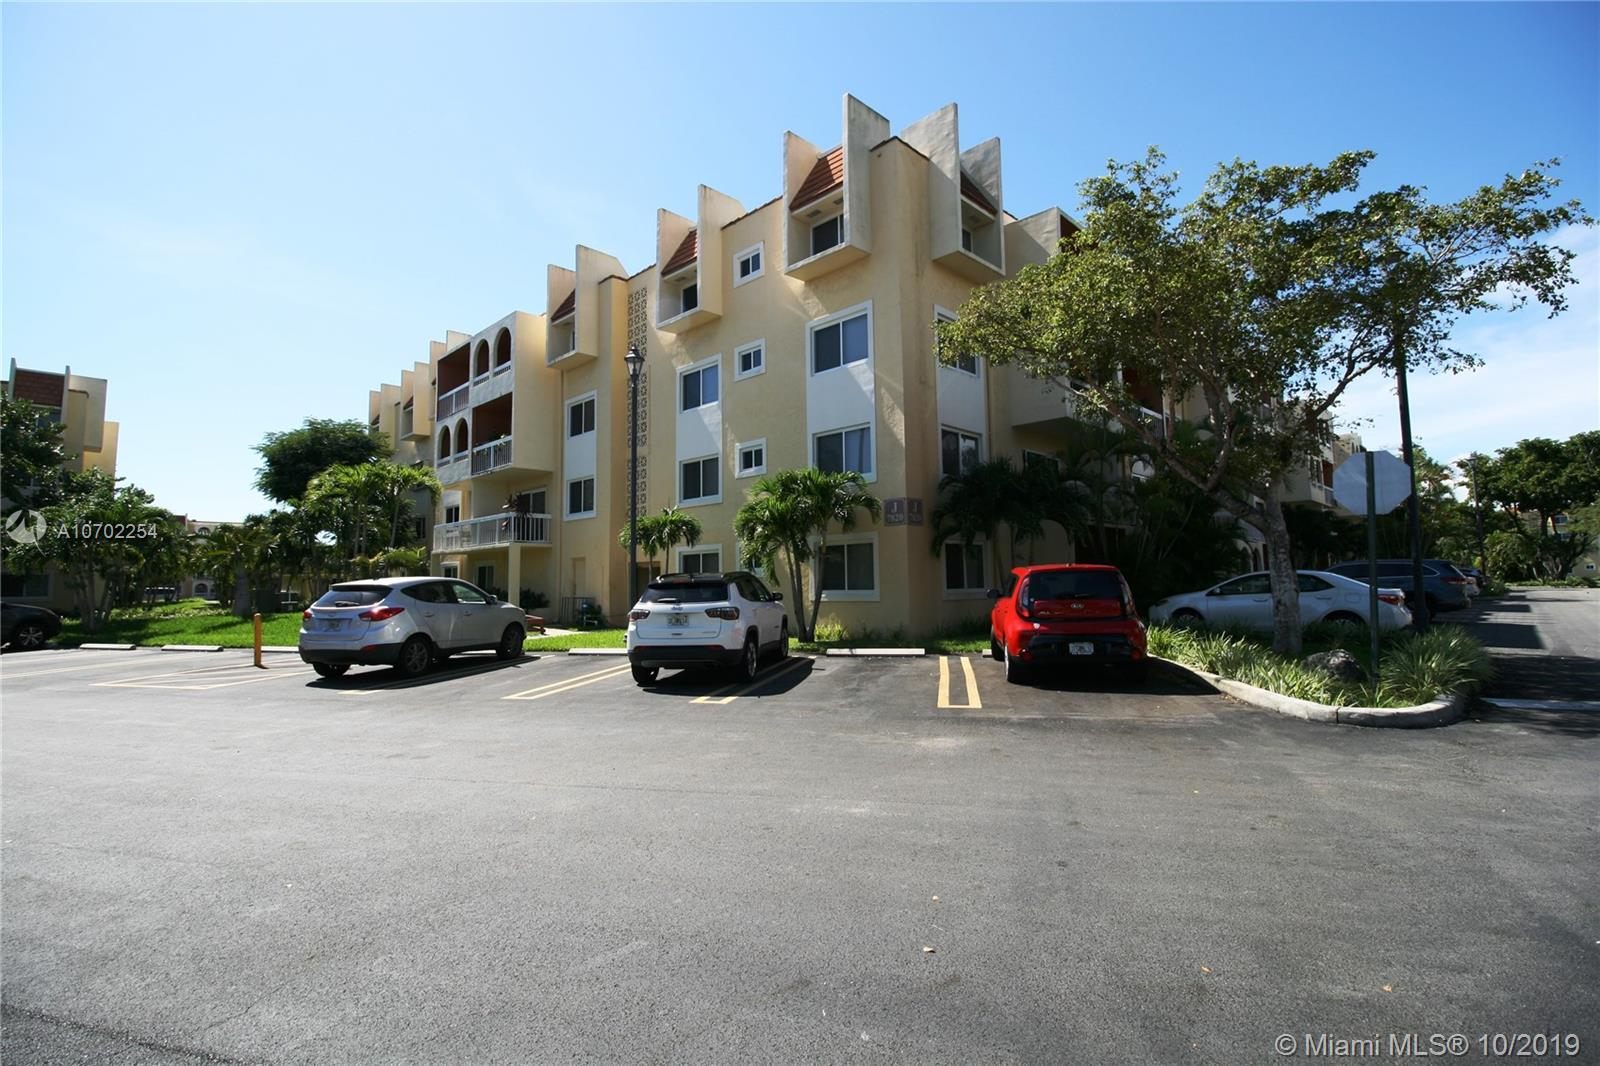 7820  Camino Real #J-320 For Sale A10702254, FL